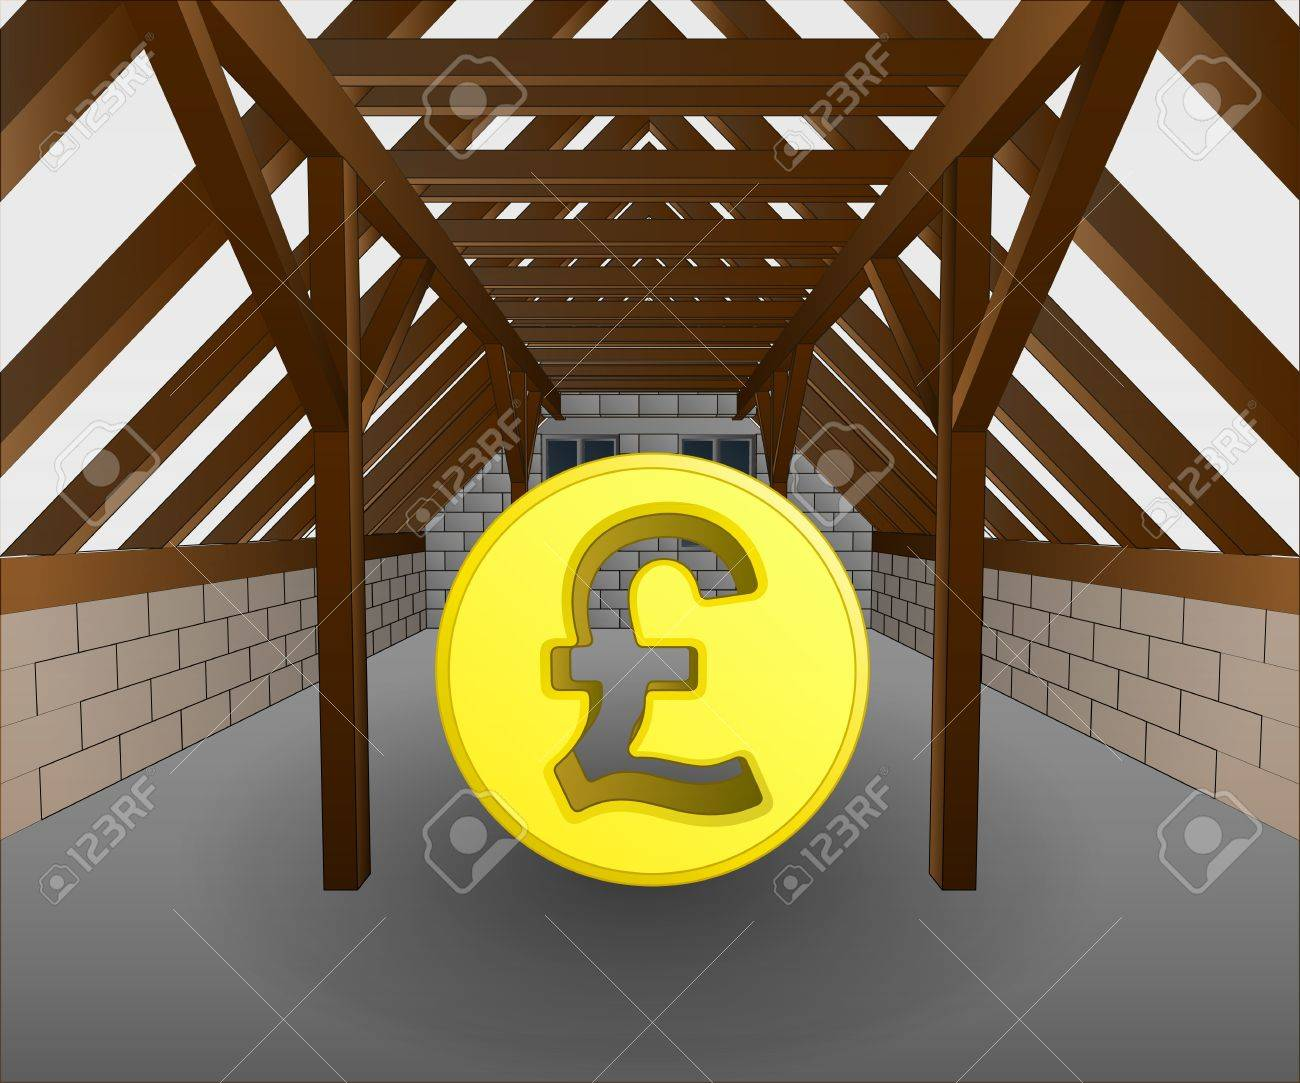 attic under construction with pound coin vector illustration Stock Vector - 21659639